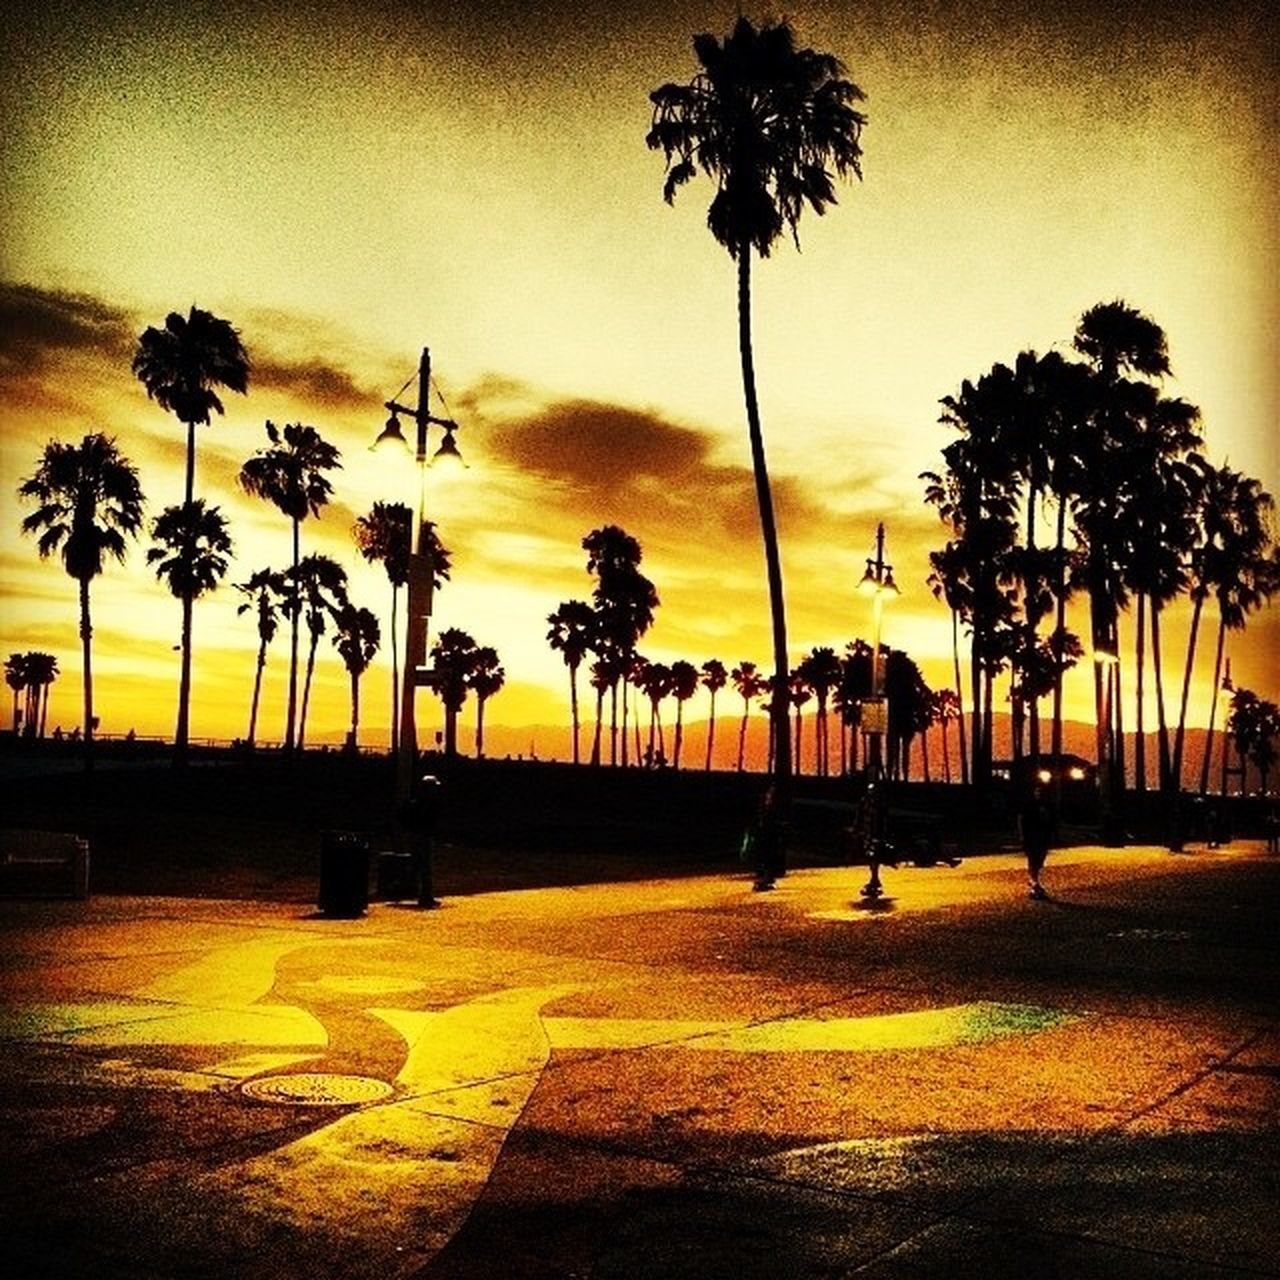 Eyeem Beach Shots EyeEm Palm Trees Enjoying Life Sunset Sunset Silhouettes Venicelife Gods Light Venice Streetphotography